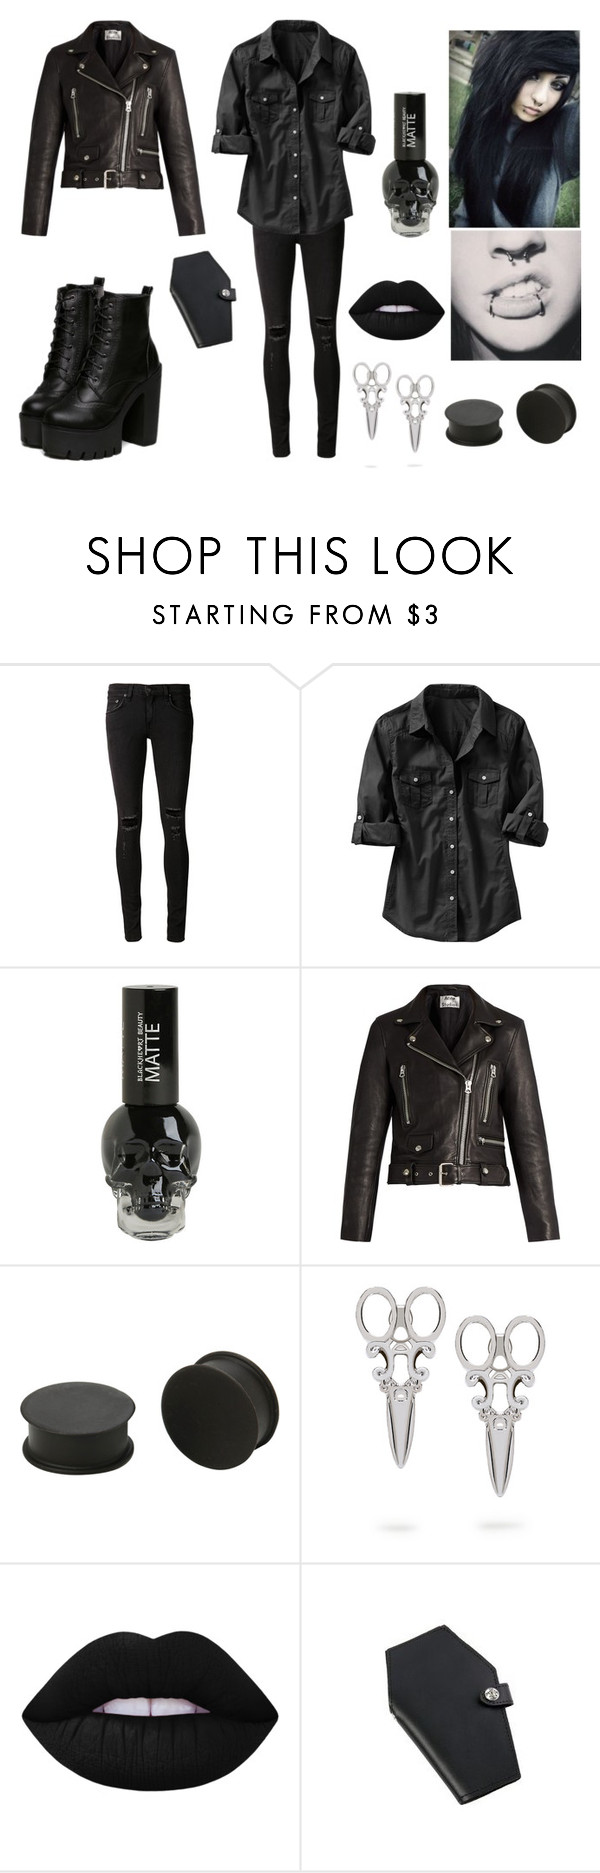 """""""#5"""" by mafromero ❤ liked on Polyvore featuring rag & bone/JEAN, Old Navy, Acne Studios and KAOS"""